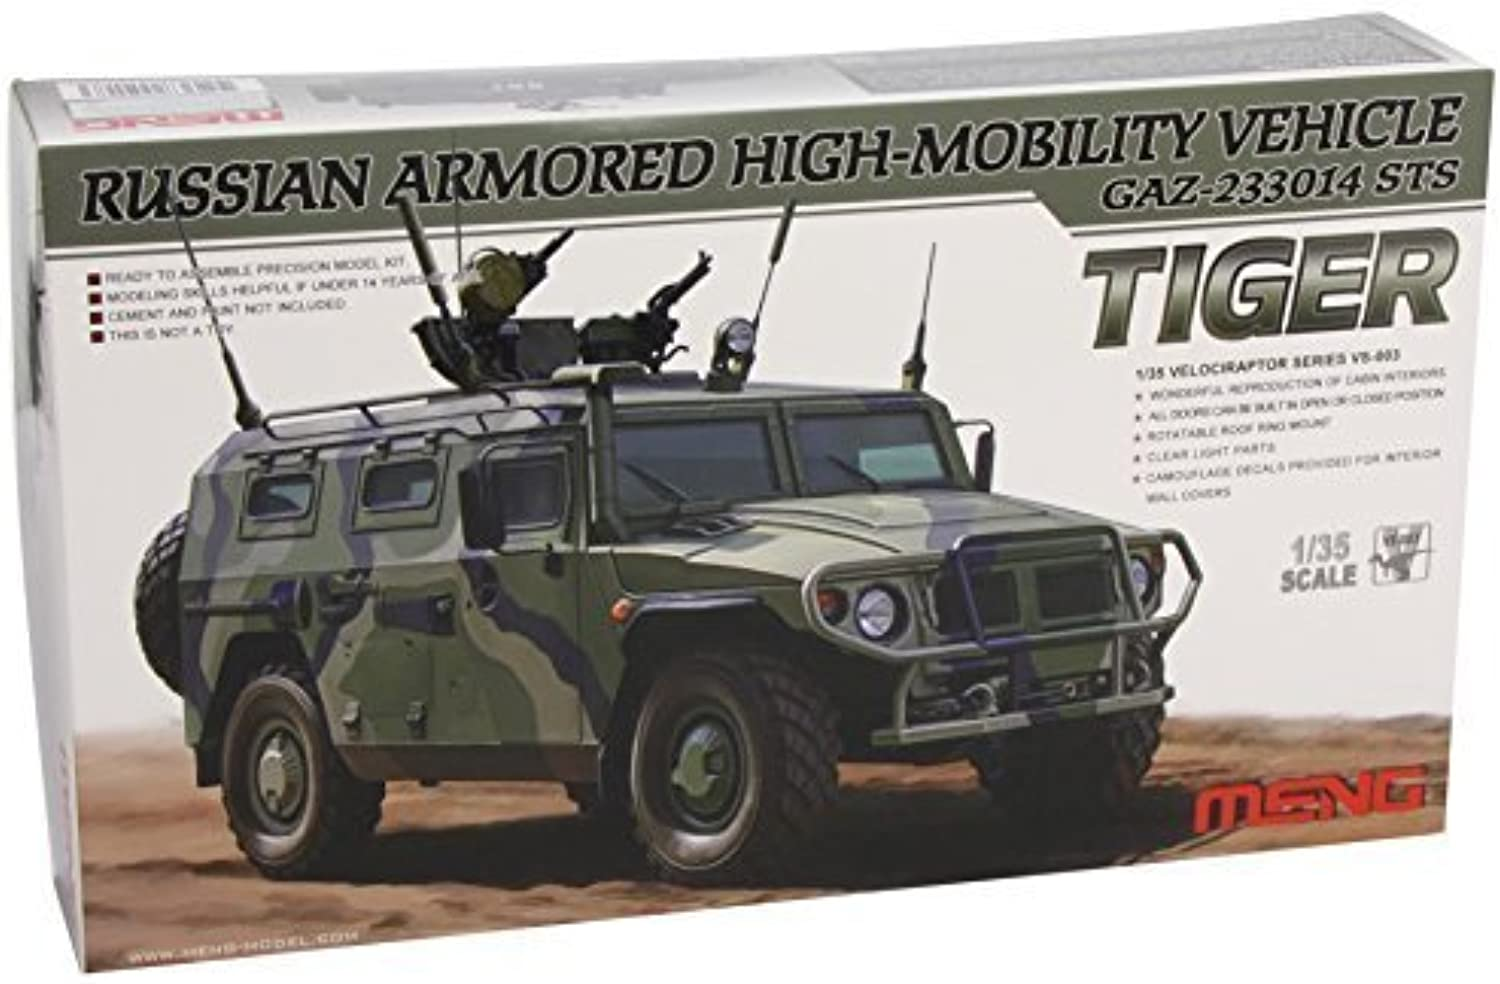 Meng Models GAZ233014 STS Tiger Russian ArmGoldt High-Motility Vehicle, 1 35 Scale by Meng Models